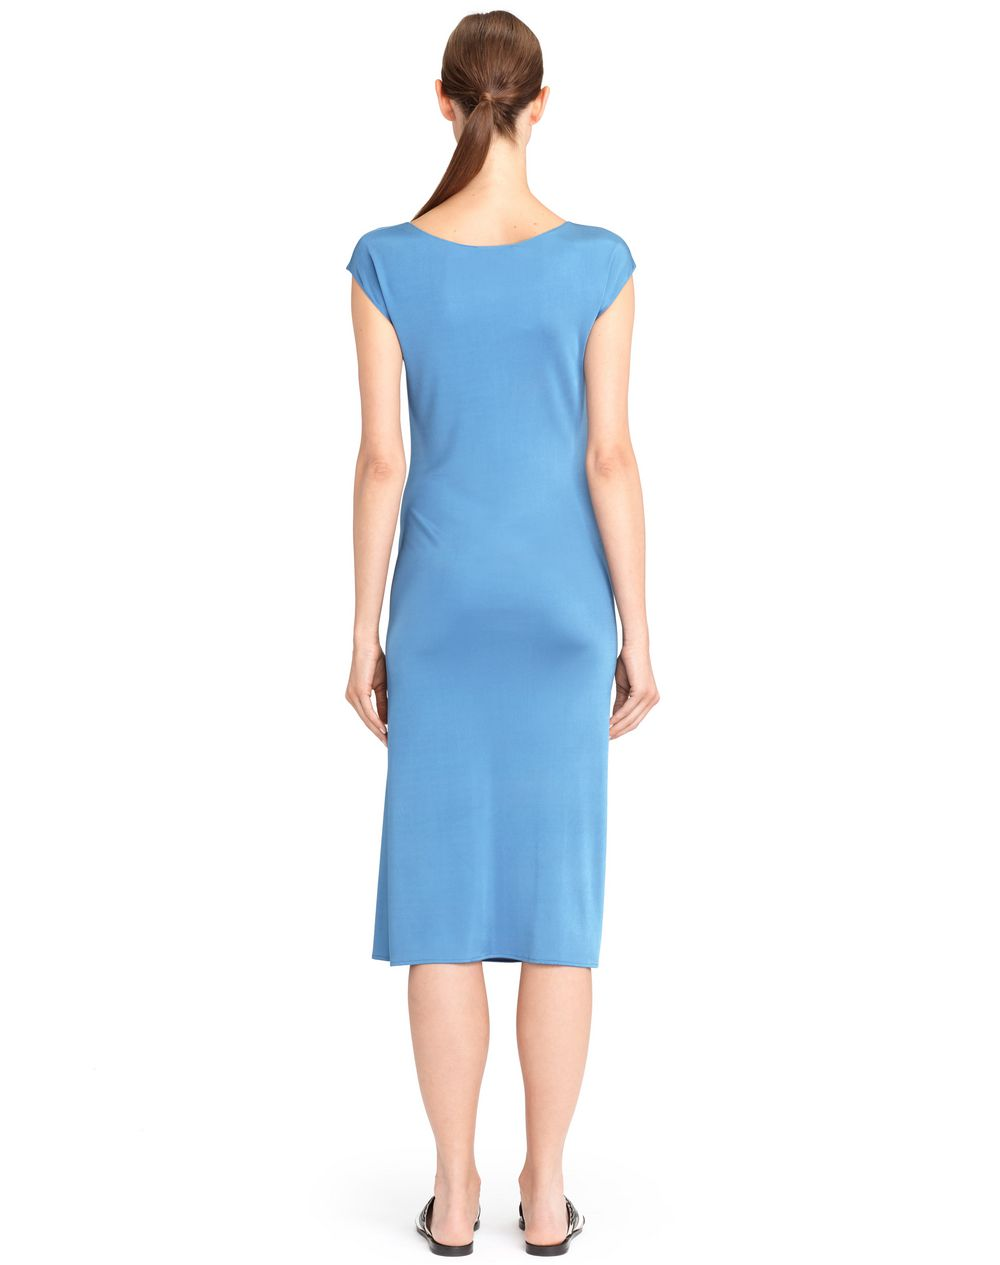 BLUE LANVIN DRAPED JERSEY DRESS - Lanvin